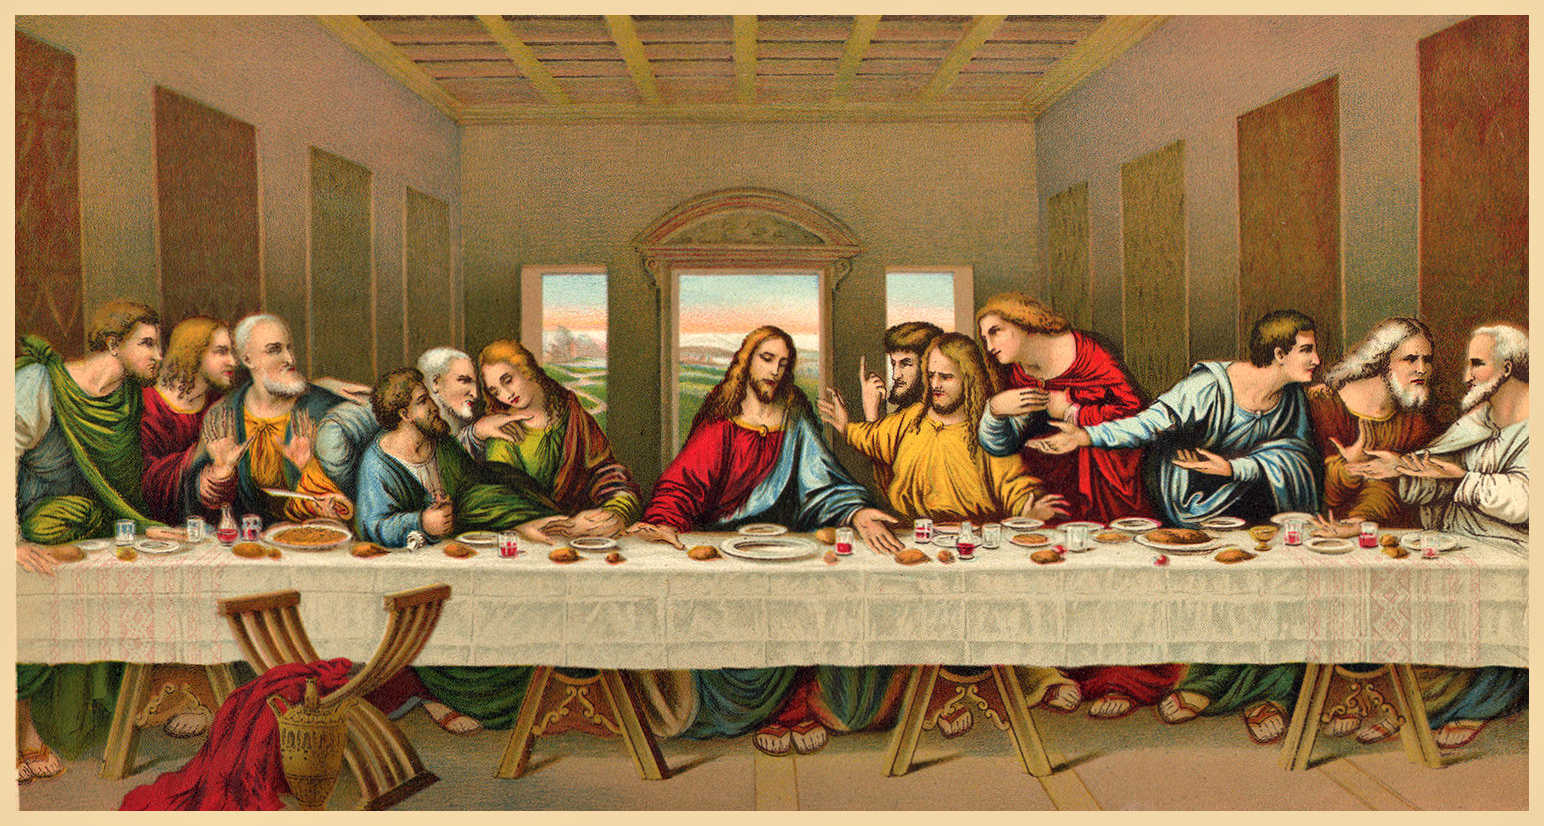 The Last Supper Image Download.